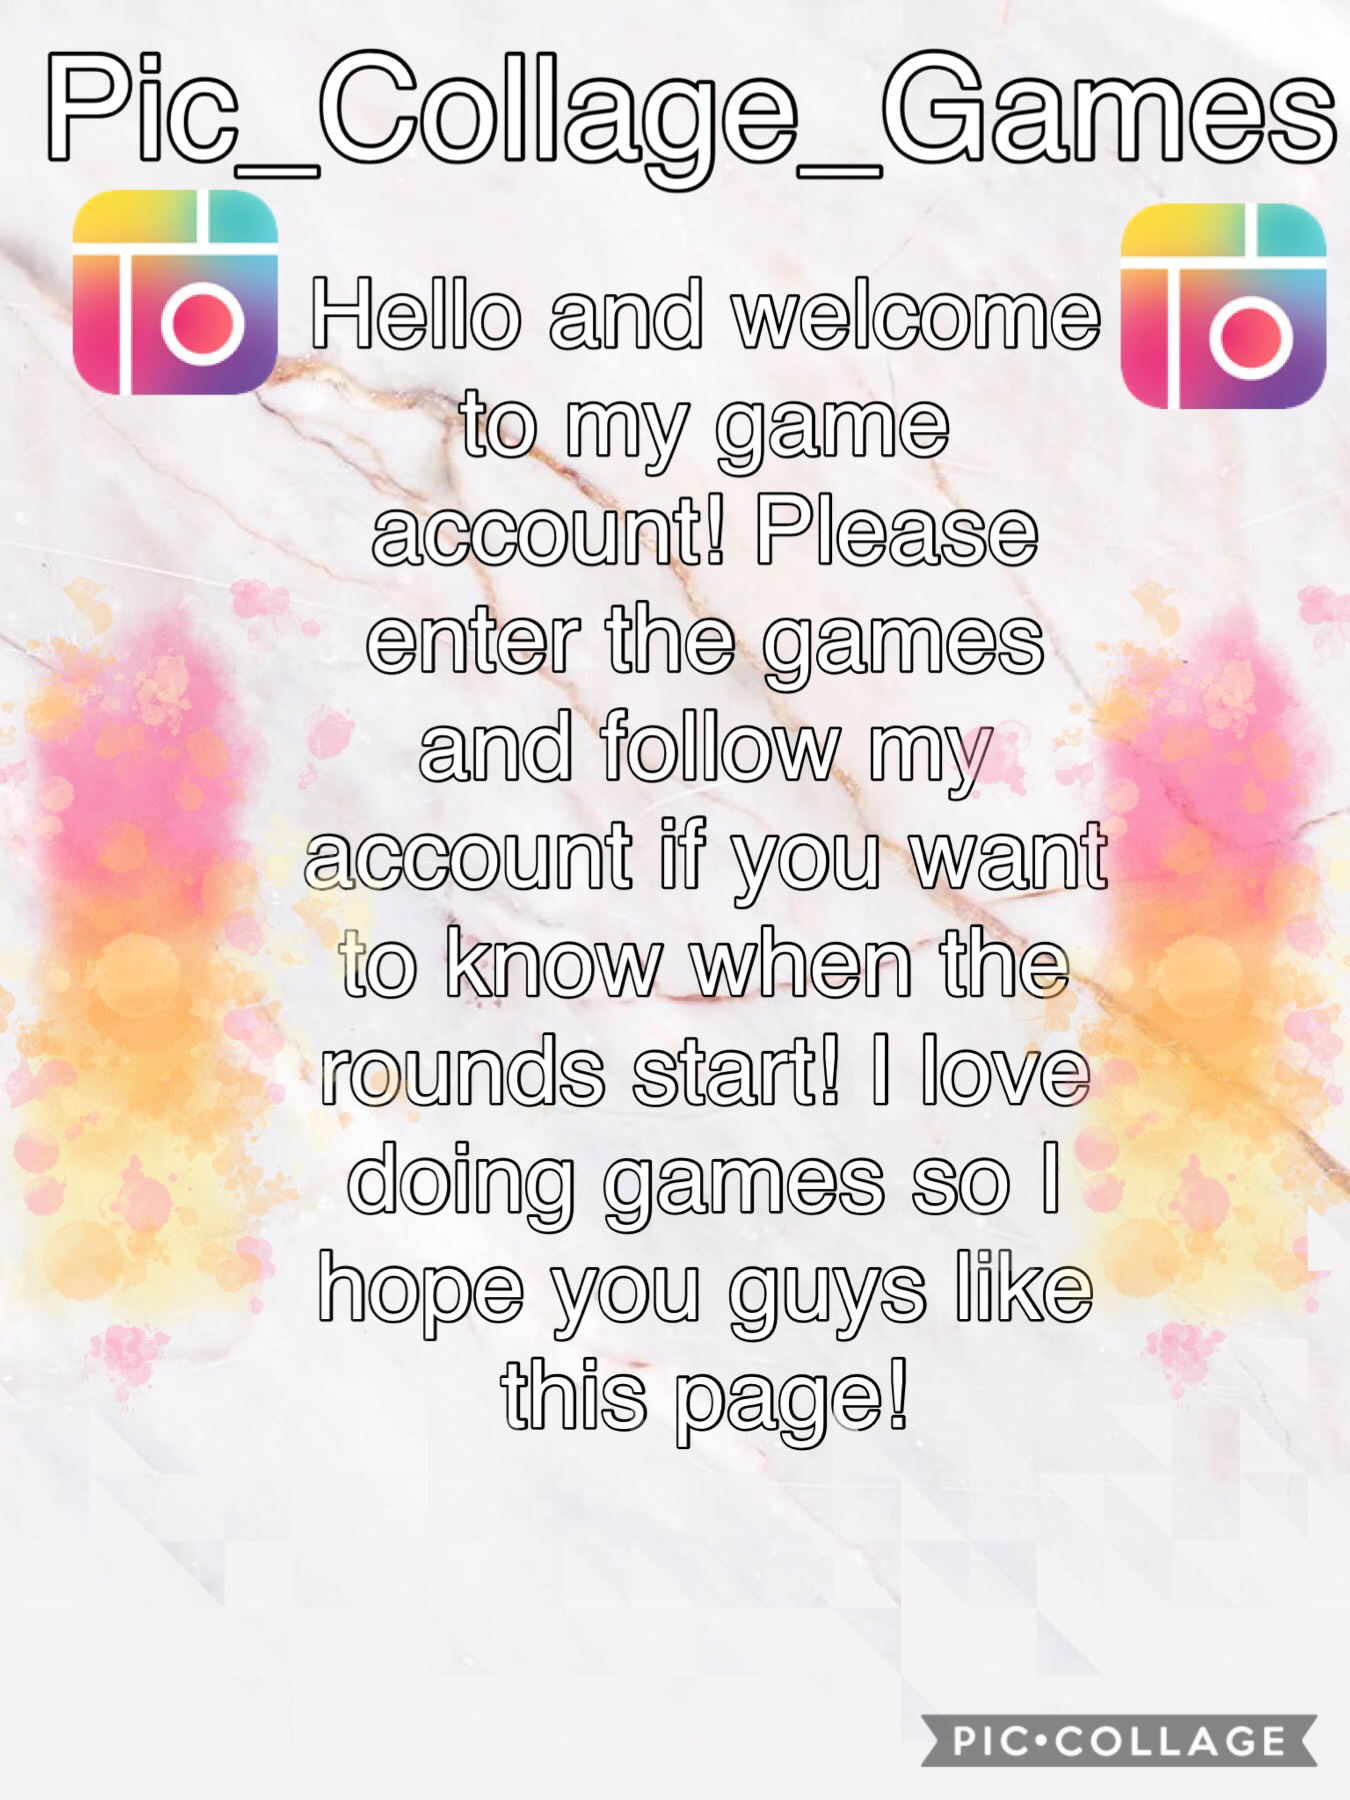 It's the Pic_Collage_Games! The next post is the first game sign ups!